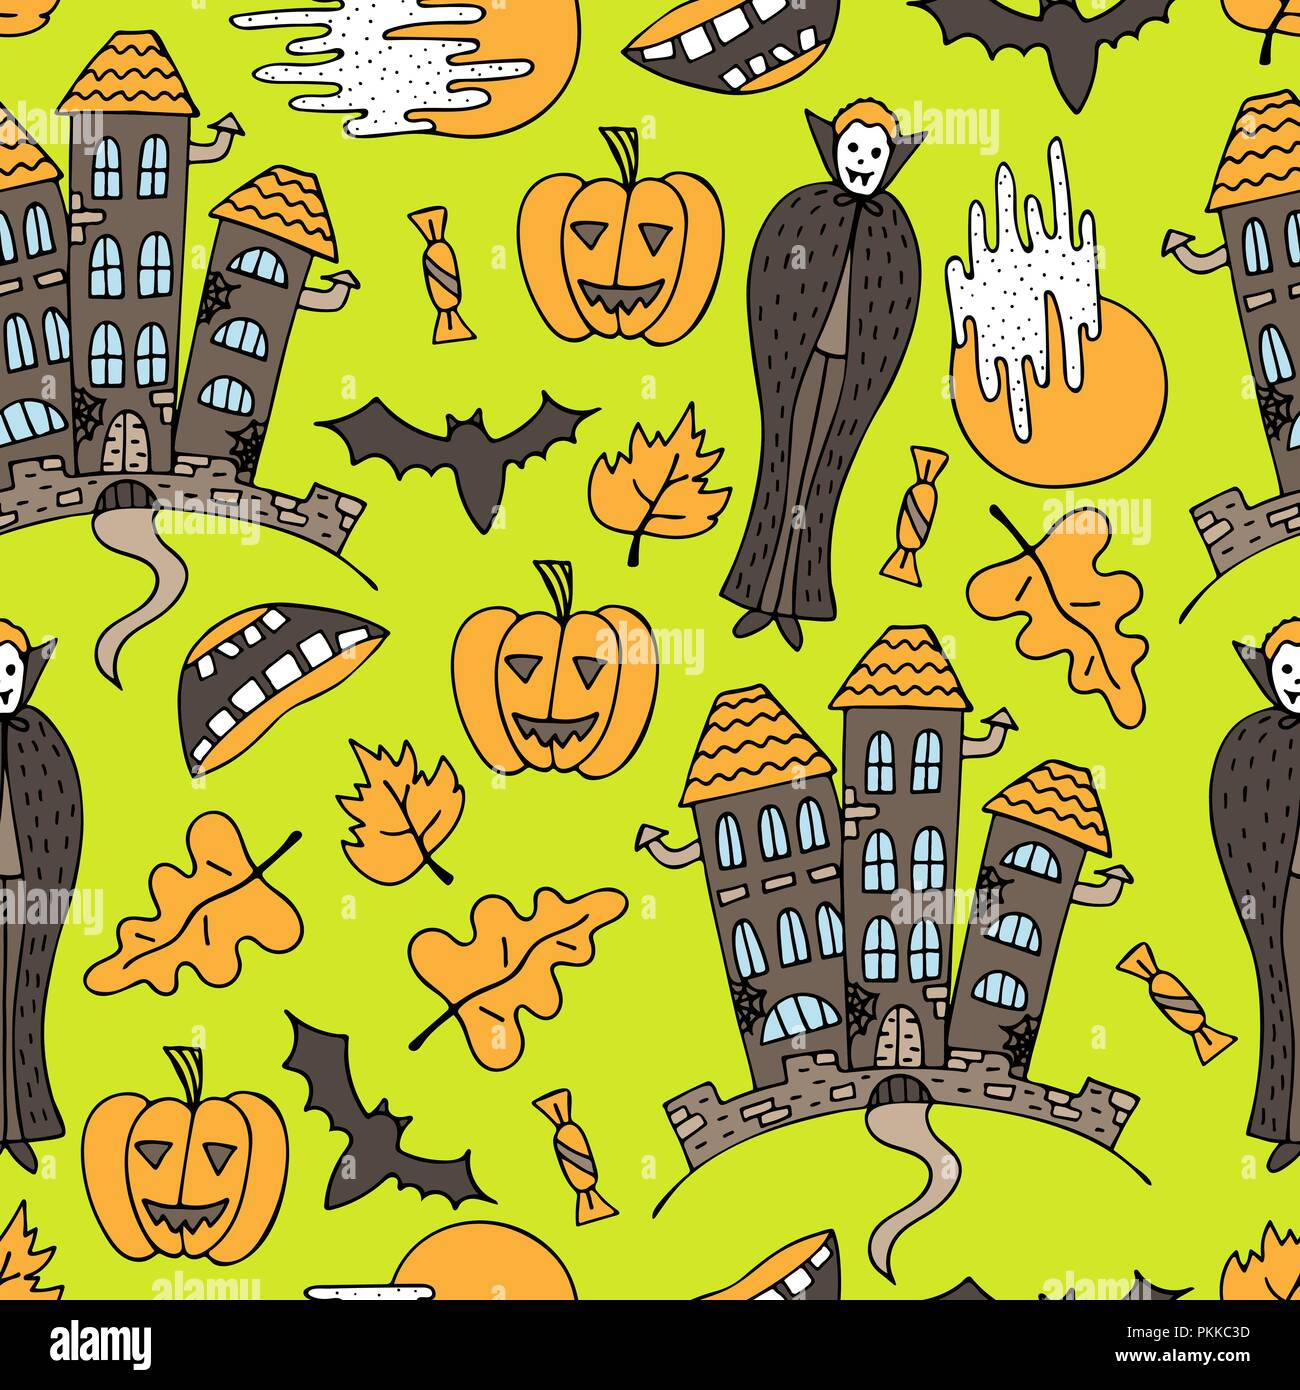 Hand-drawn Halloween colorful seamless pattern with doodles. - Stock Vector